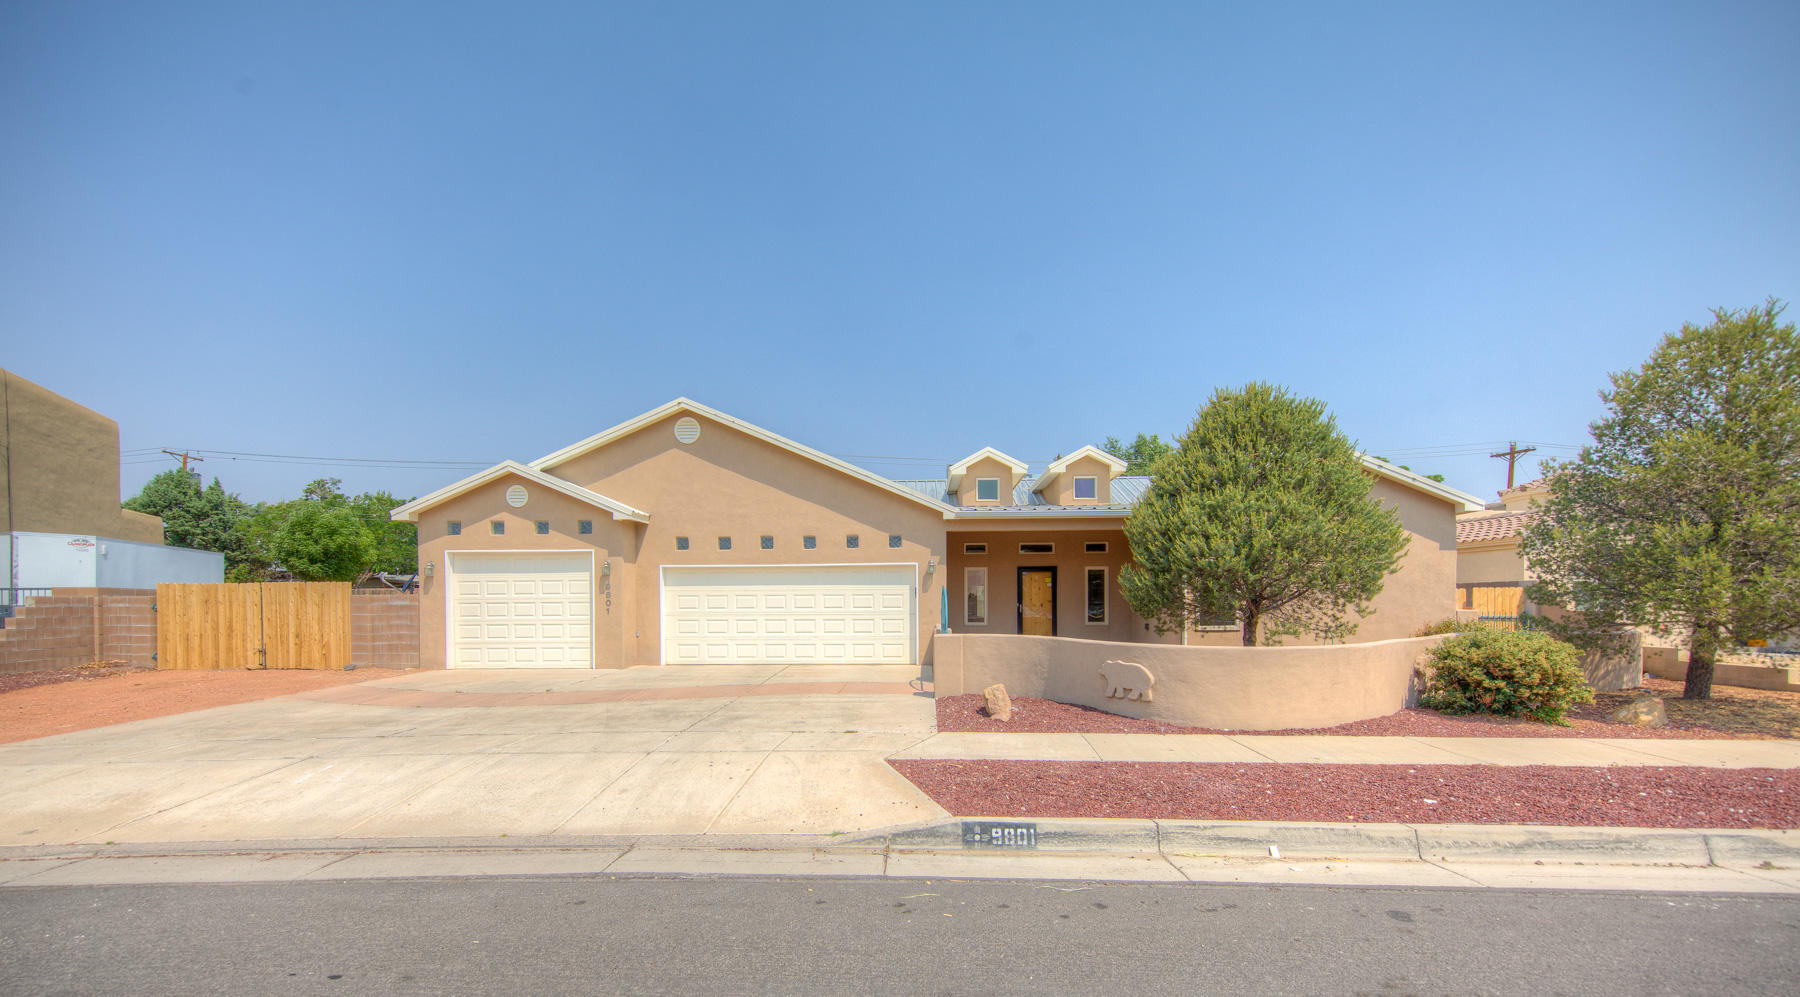 Spacious six bedroom home. Kitchen is complete with large island and stainless steel appliances. Ceilings are raised, spacious living areas and custom fireplace.